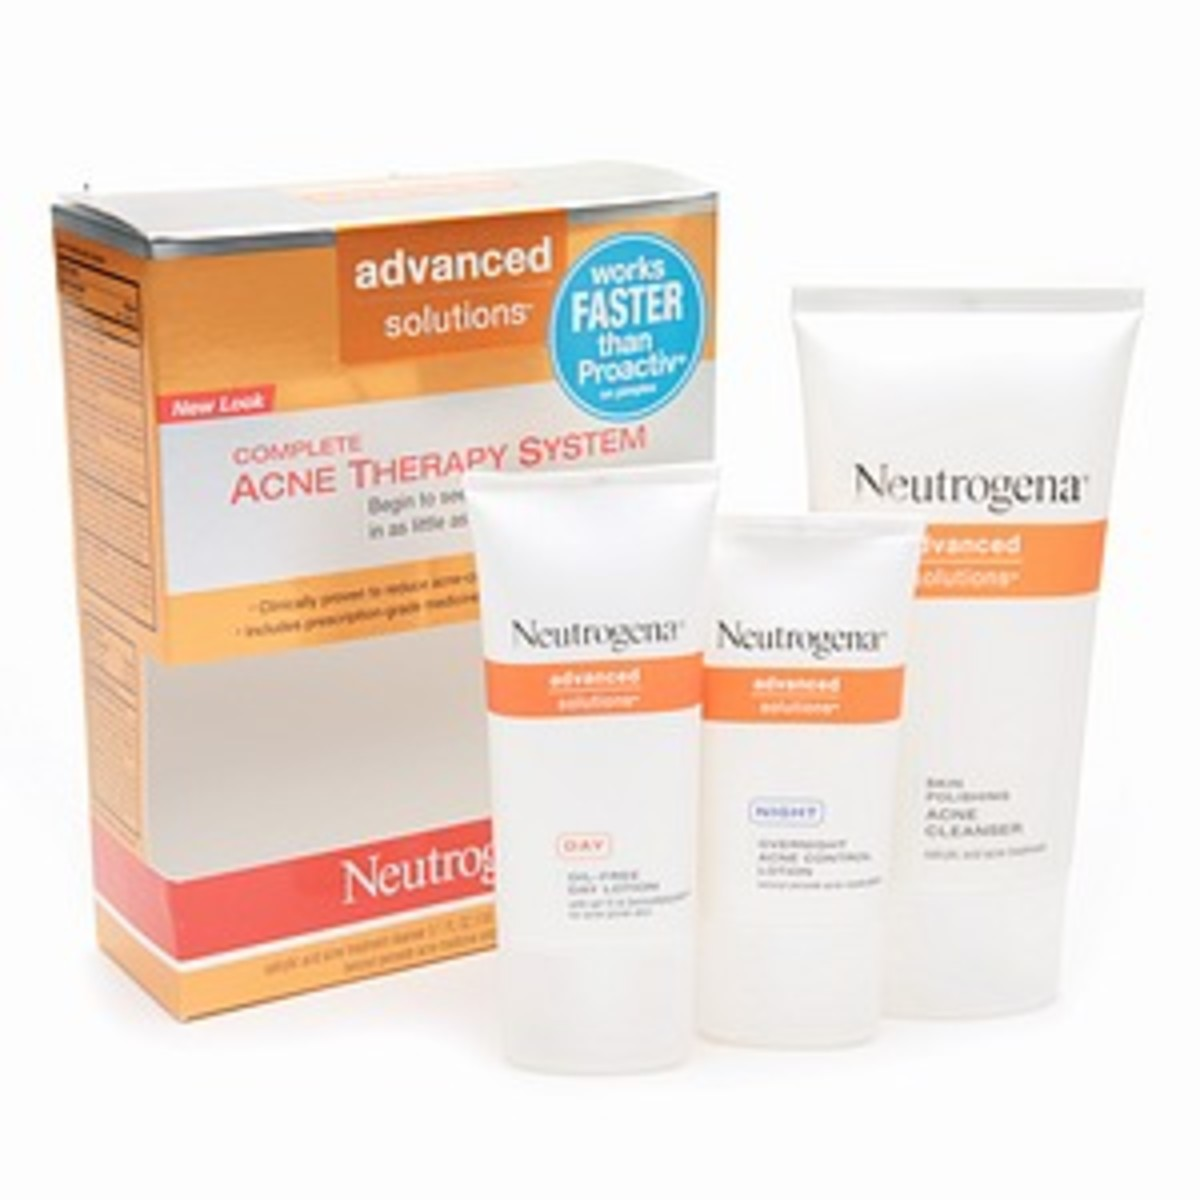 Neutrogena's Advanced Solutions Acne Therapy System